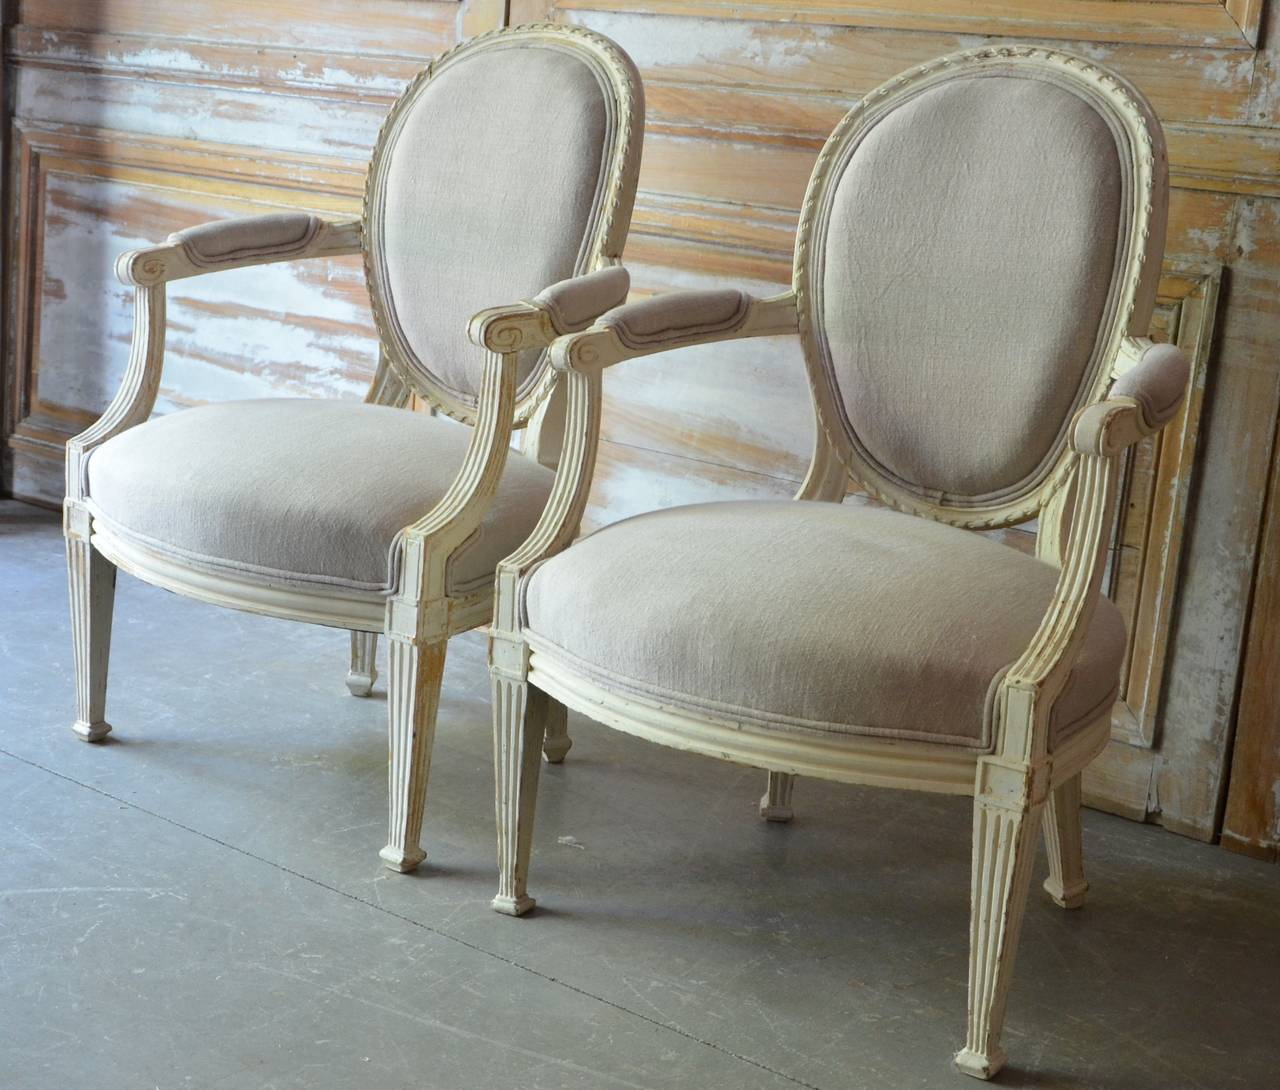 A pair of 19th century Louis XVI style Cabriolet armchairs, medallion back with elegant knotted-ribbon motifs, fluted arms, carved apron and corner blocks on turned tapering legs in worn cream patina. Upholstery in palest grey linen.